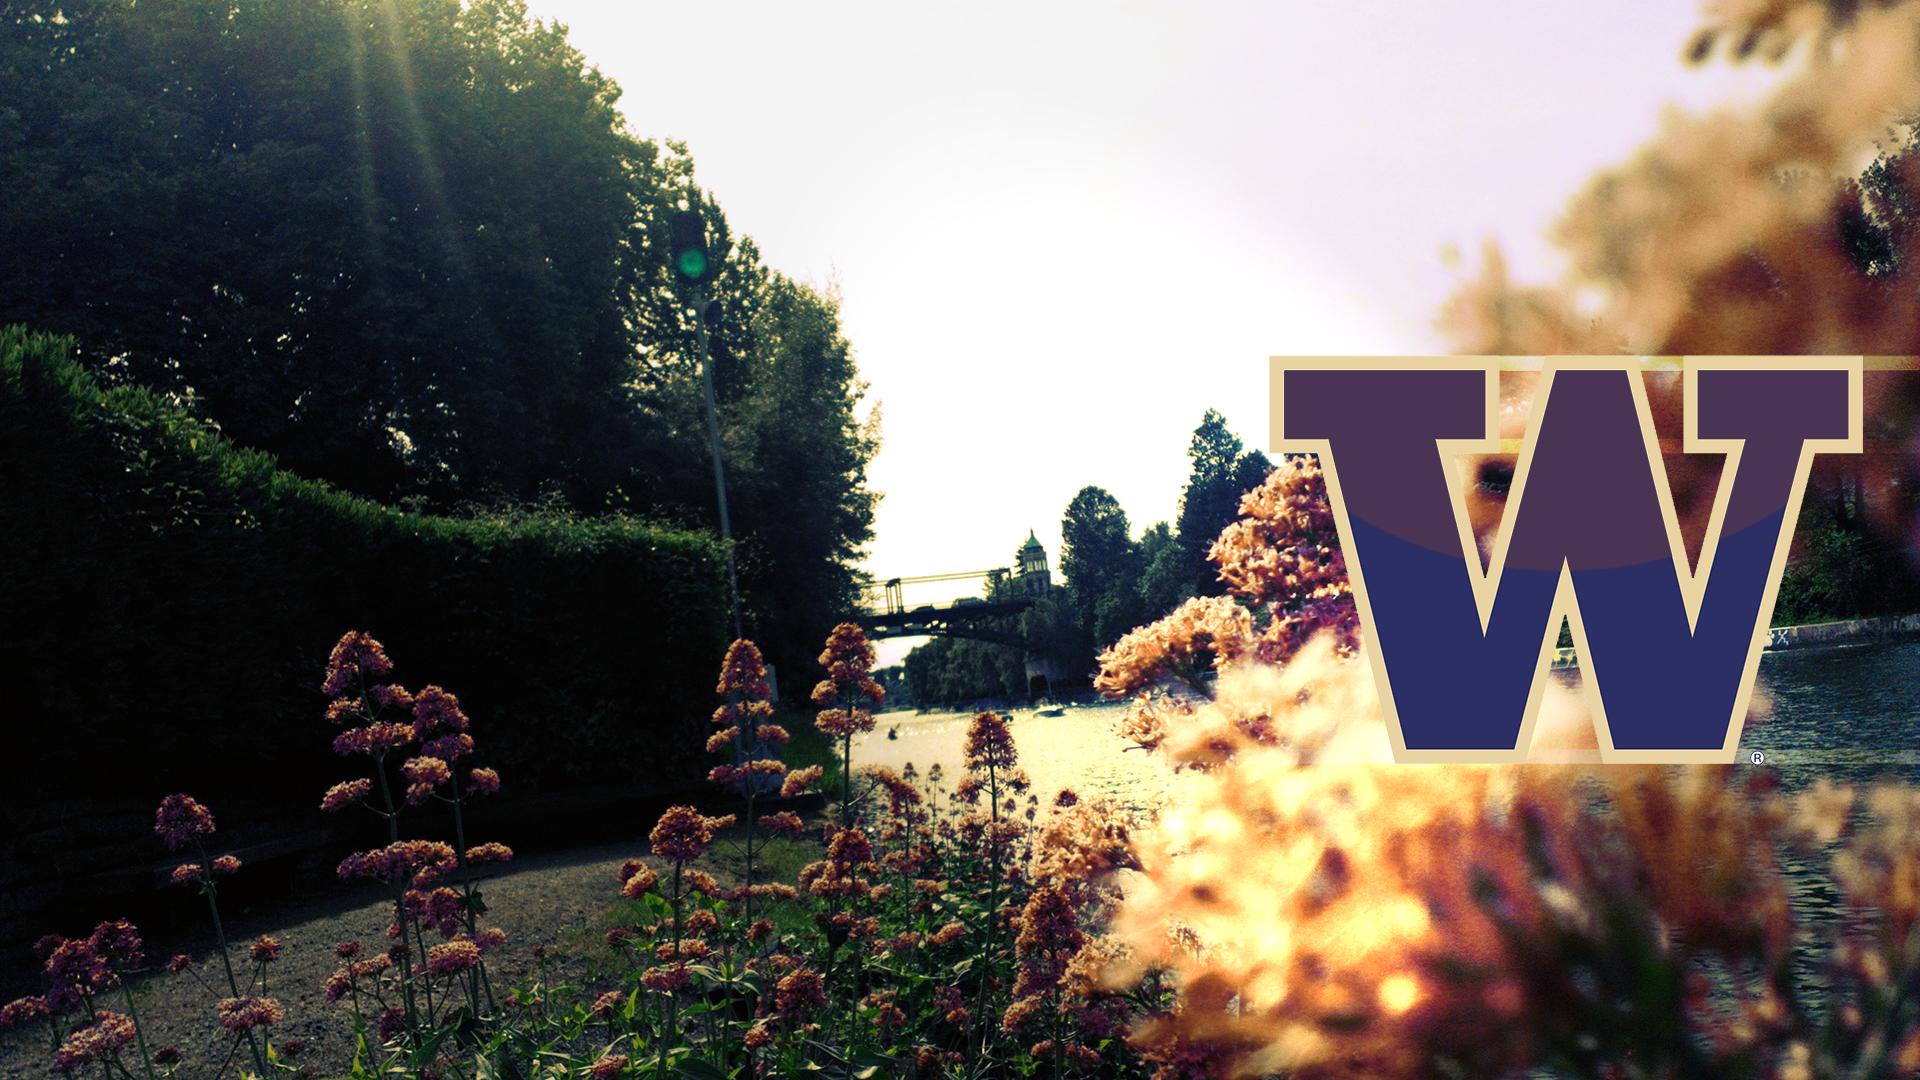 university of washington wallpaper by minotaurfayt d685g67jpg 1920x1080